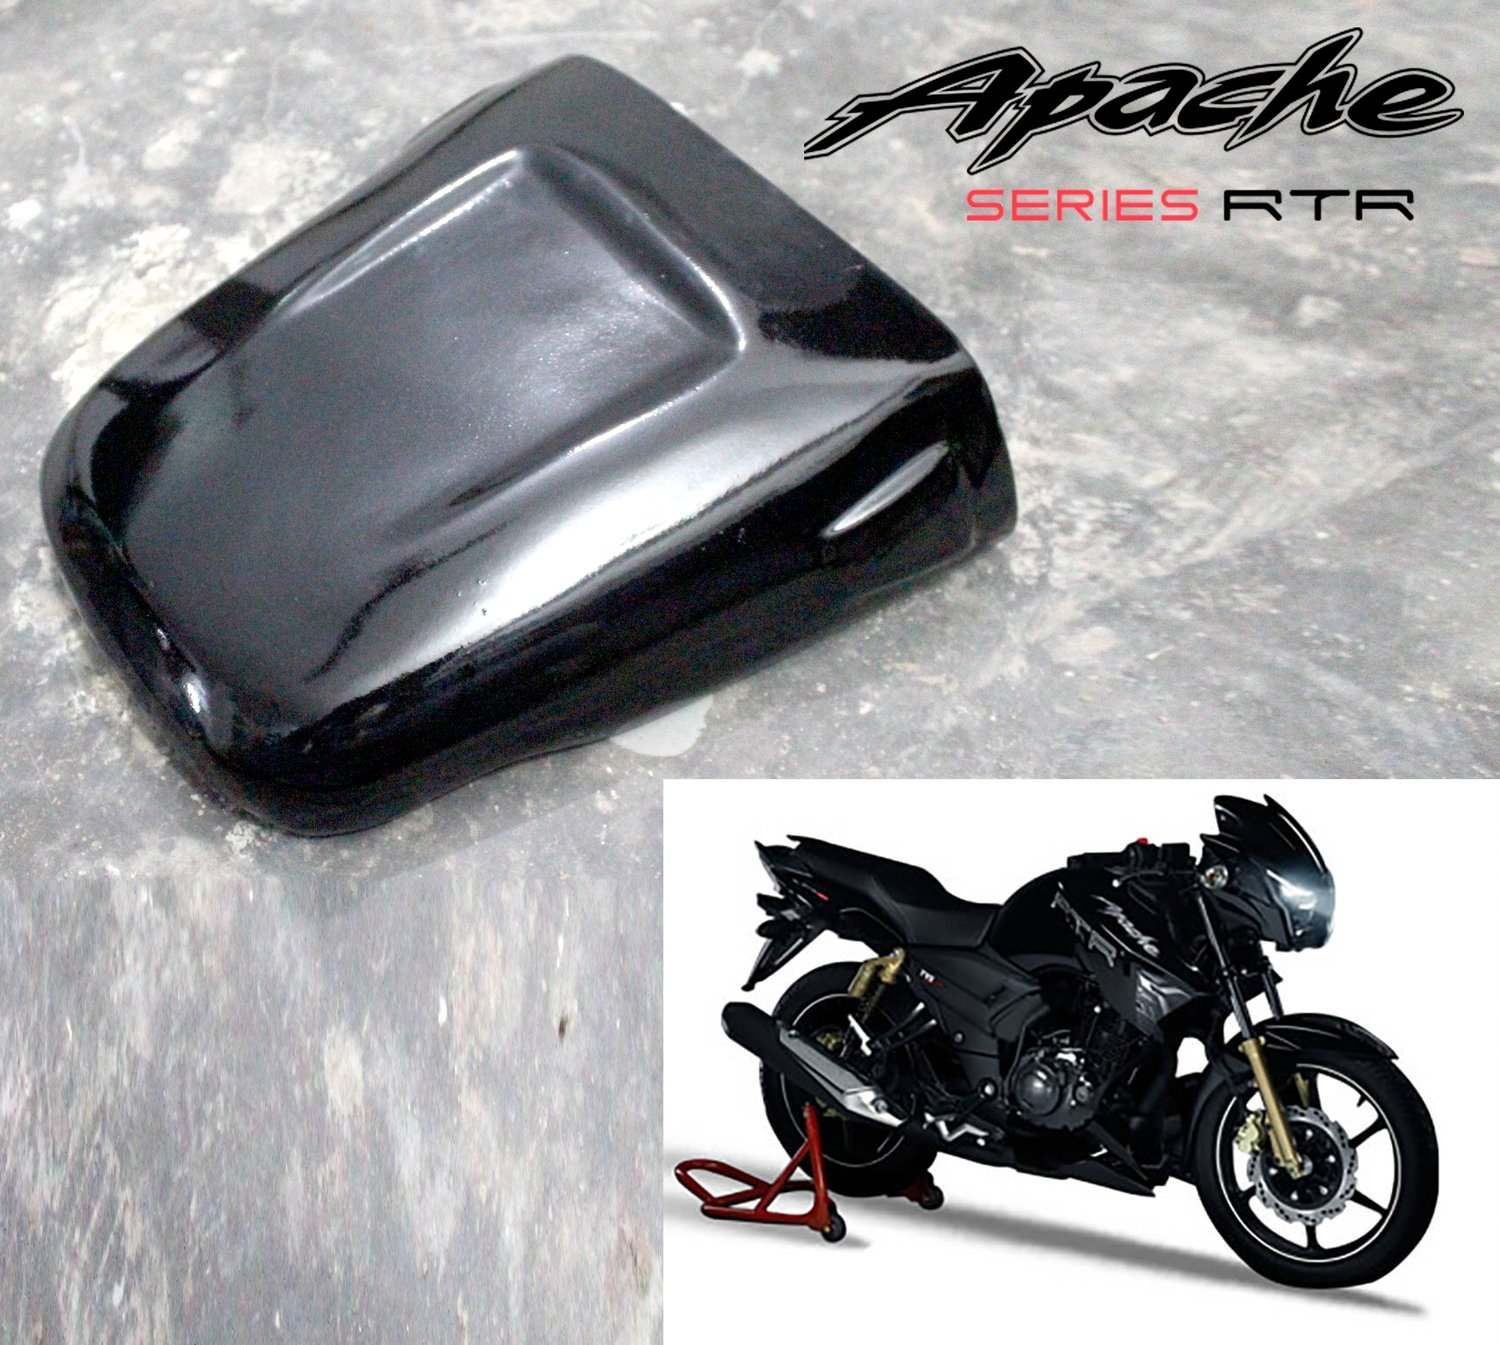 Dragster Pillion Seat Cowl for TVS Apache 160/180 - Plug N Play - Gloss Black